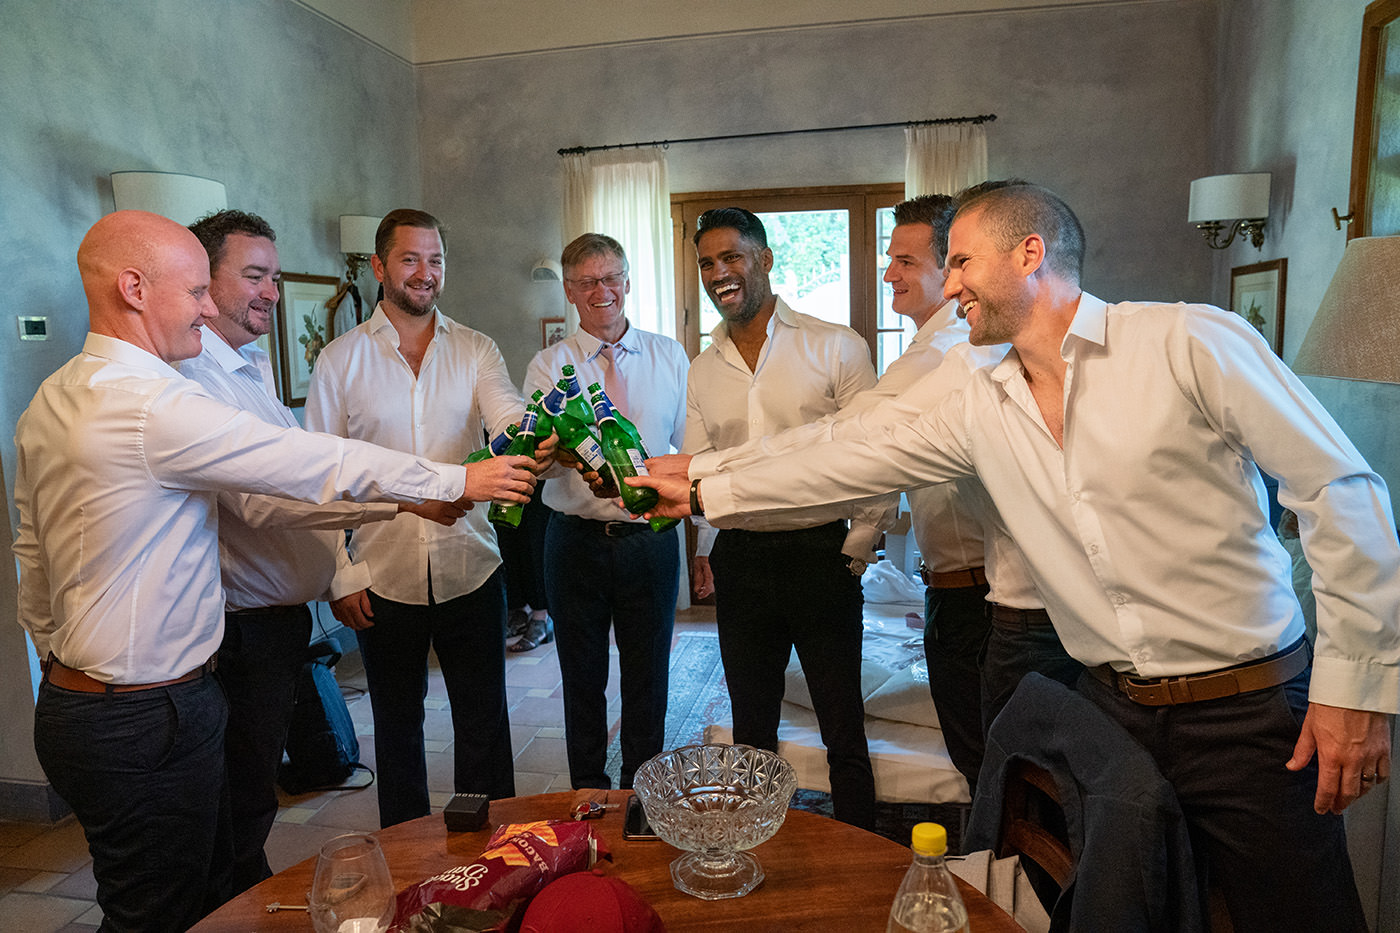 Tuscan Wedding Photo Shoots At Palagio Castle: groomsmen make a toast